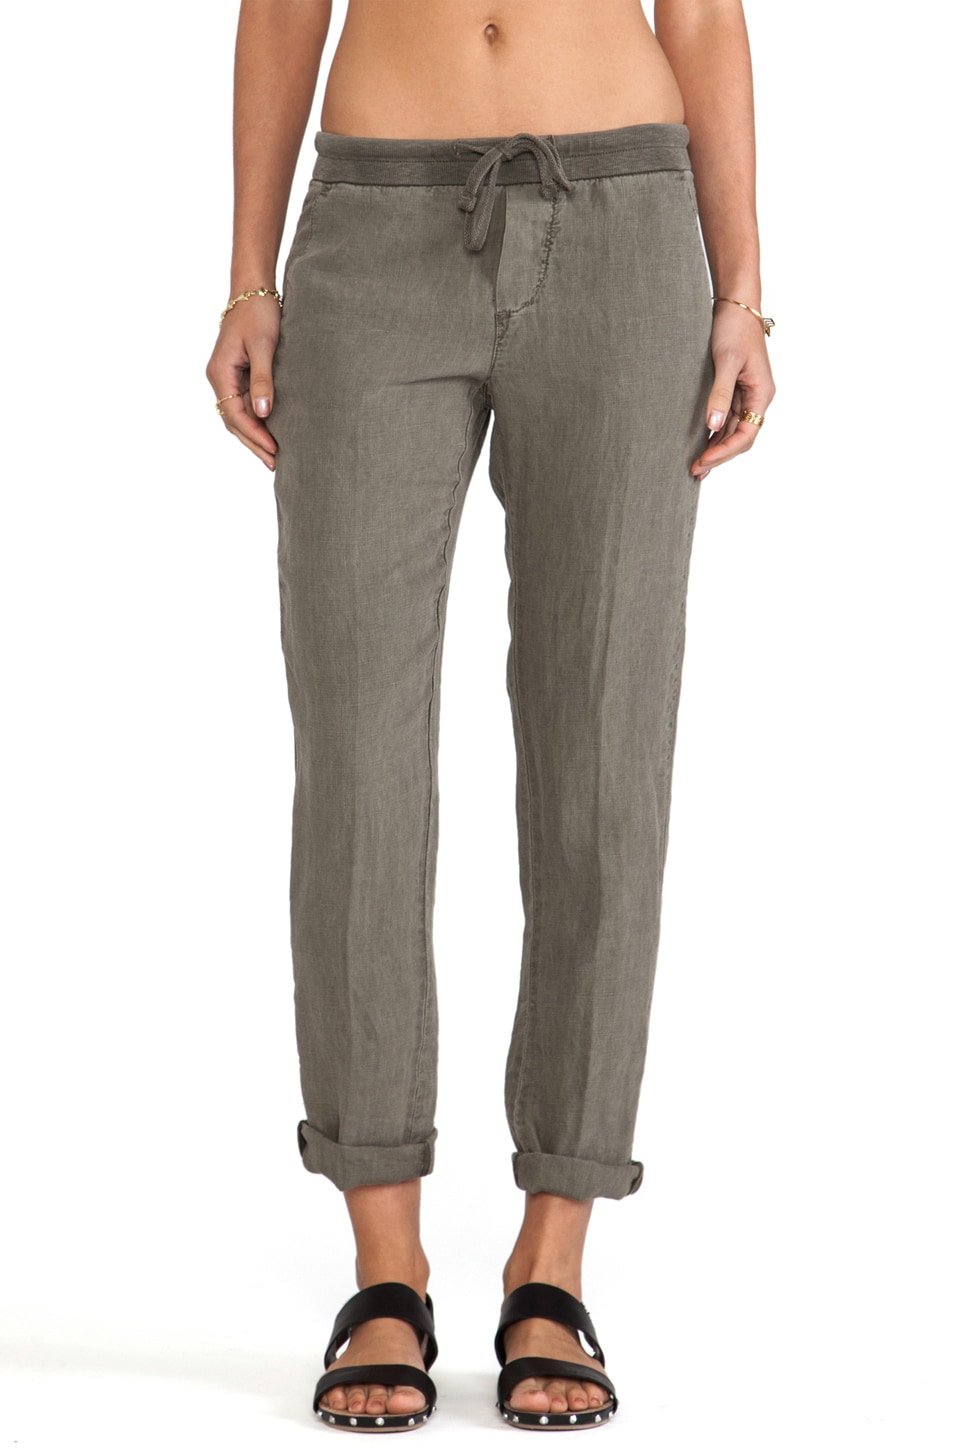 James Perse Linen Chino Pant in Safari